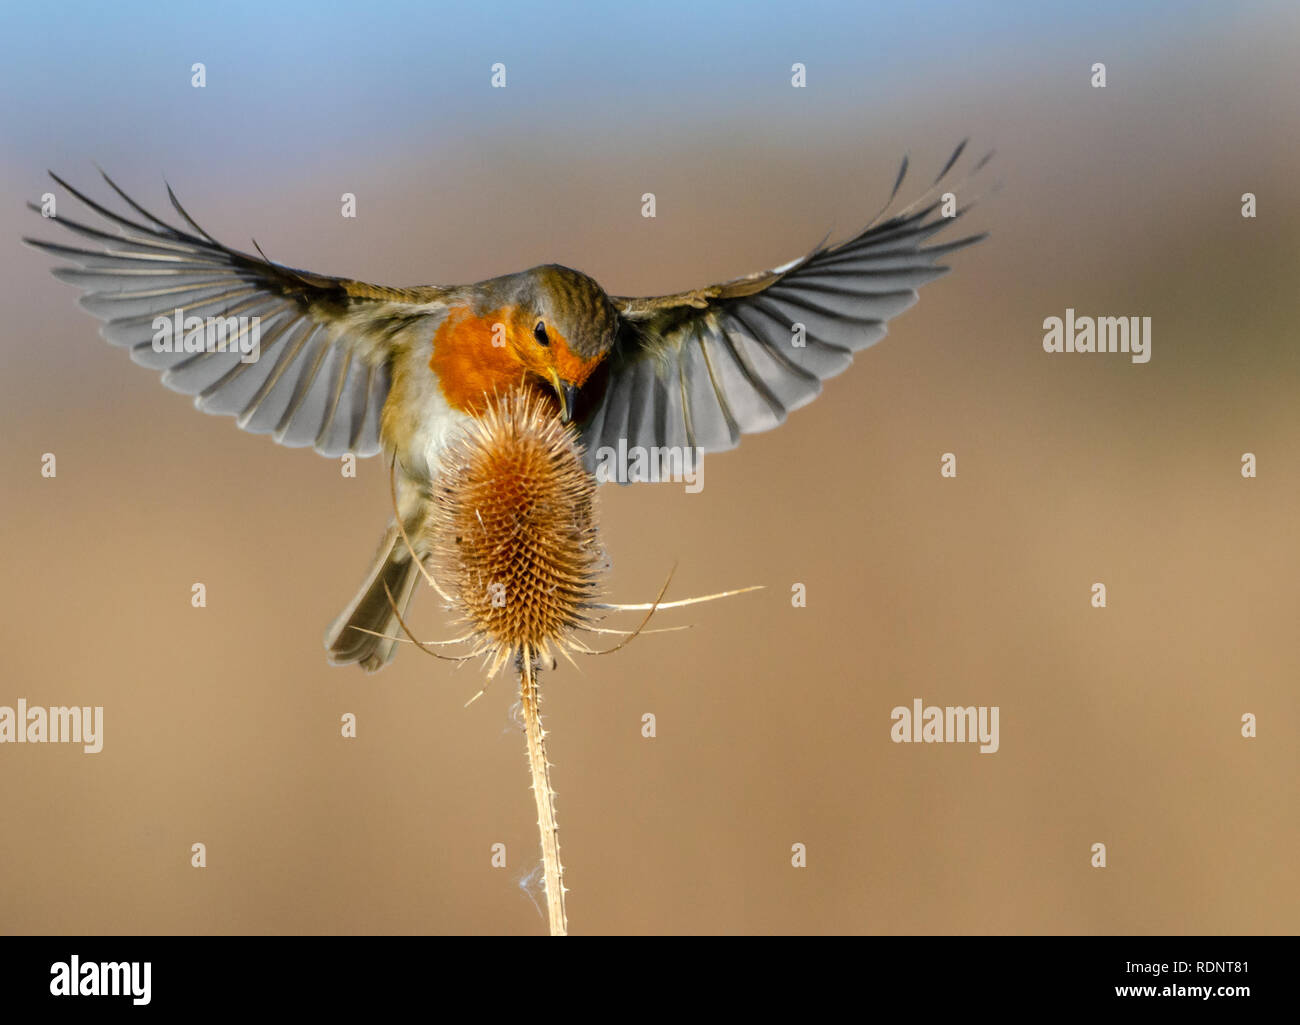 A Robin and a Teasel - Stock Image